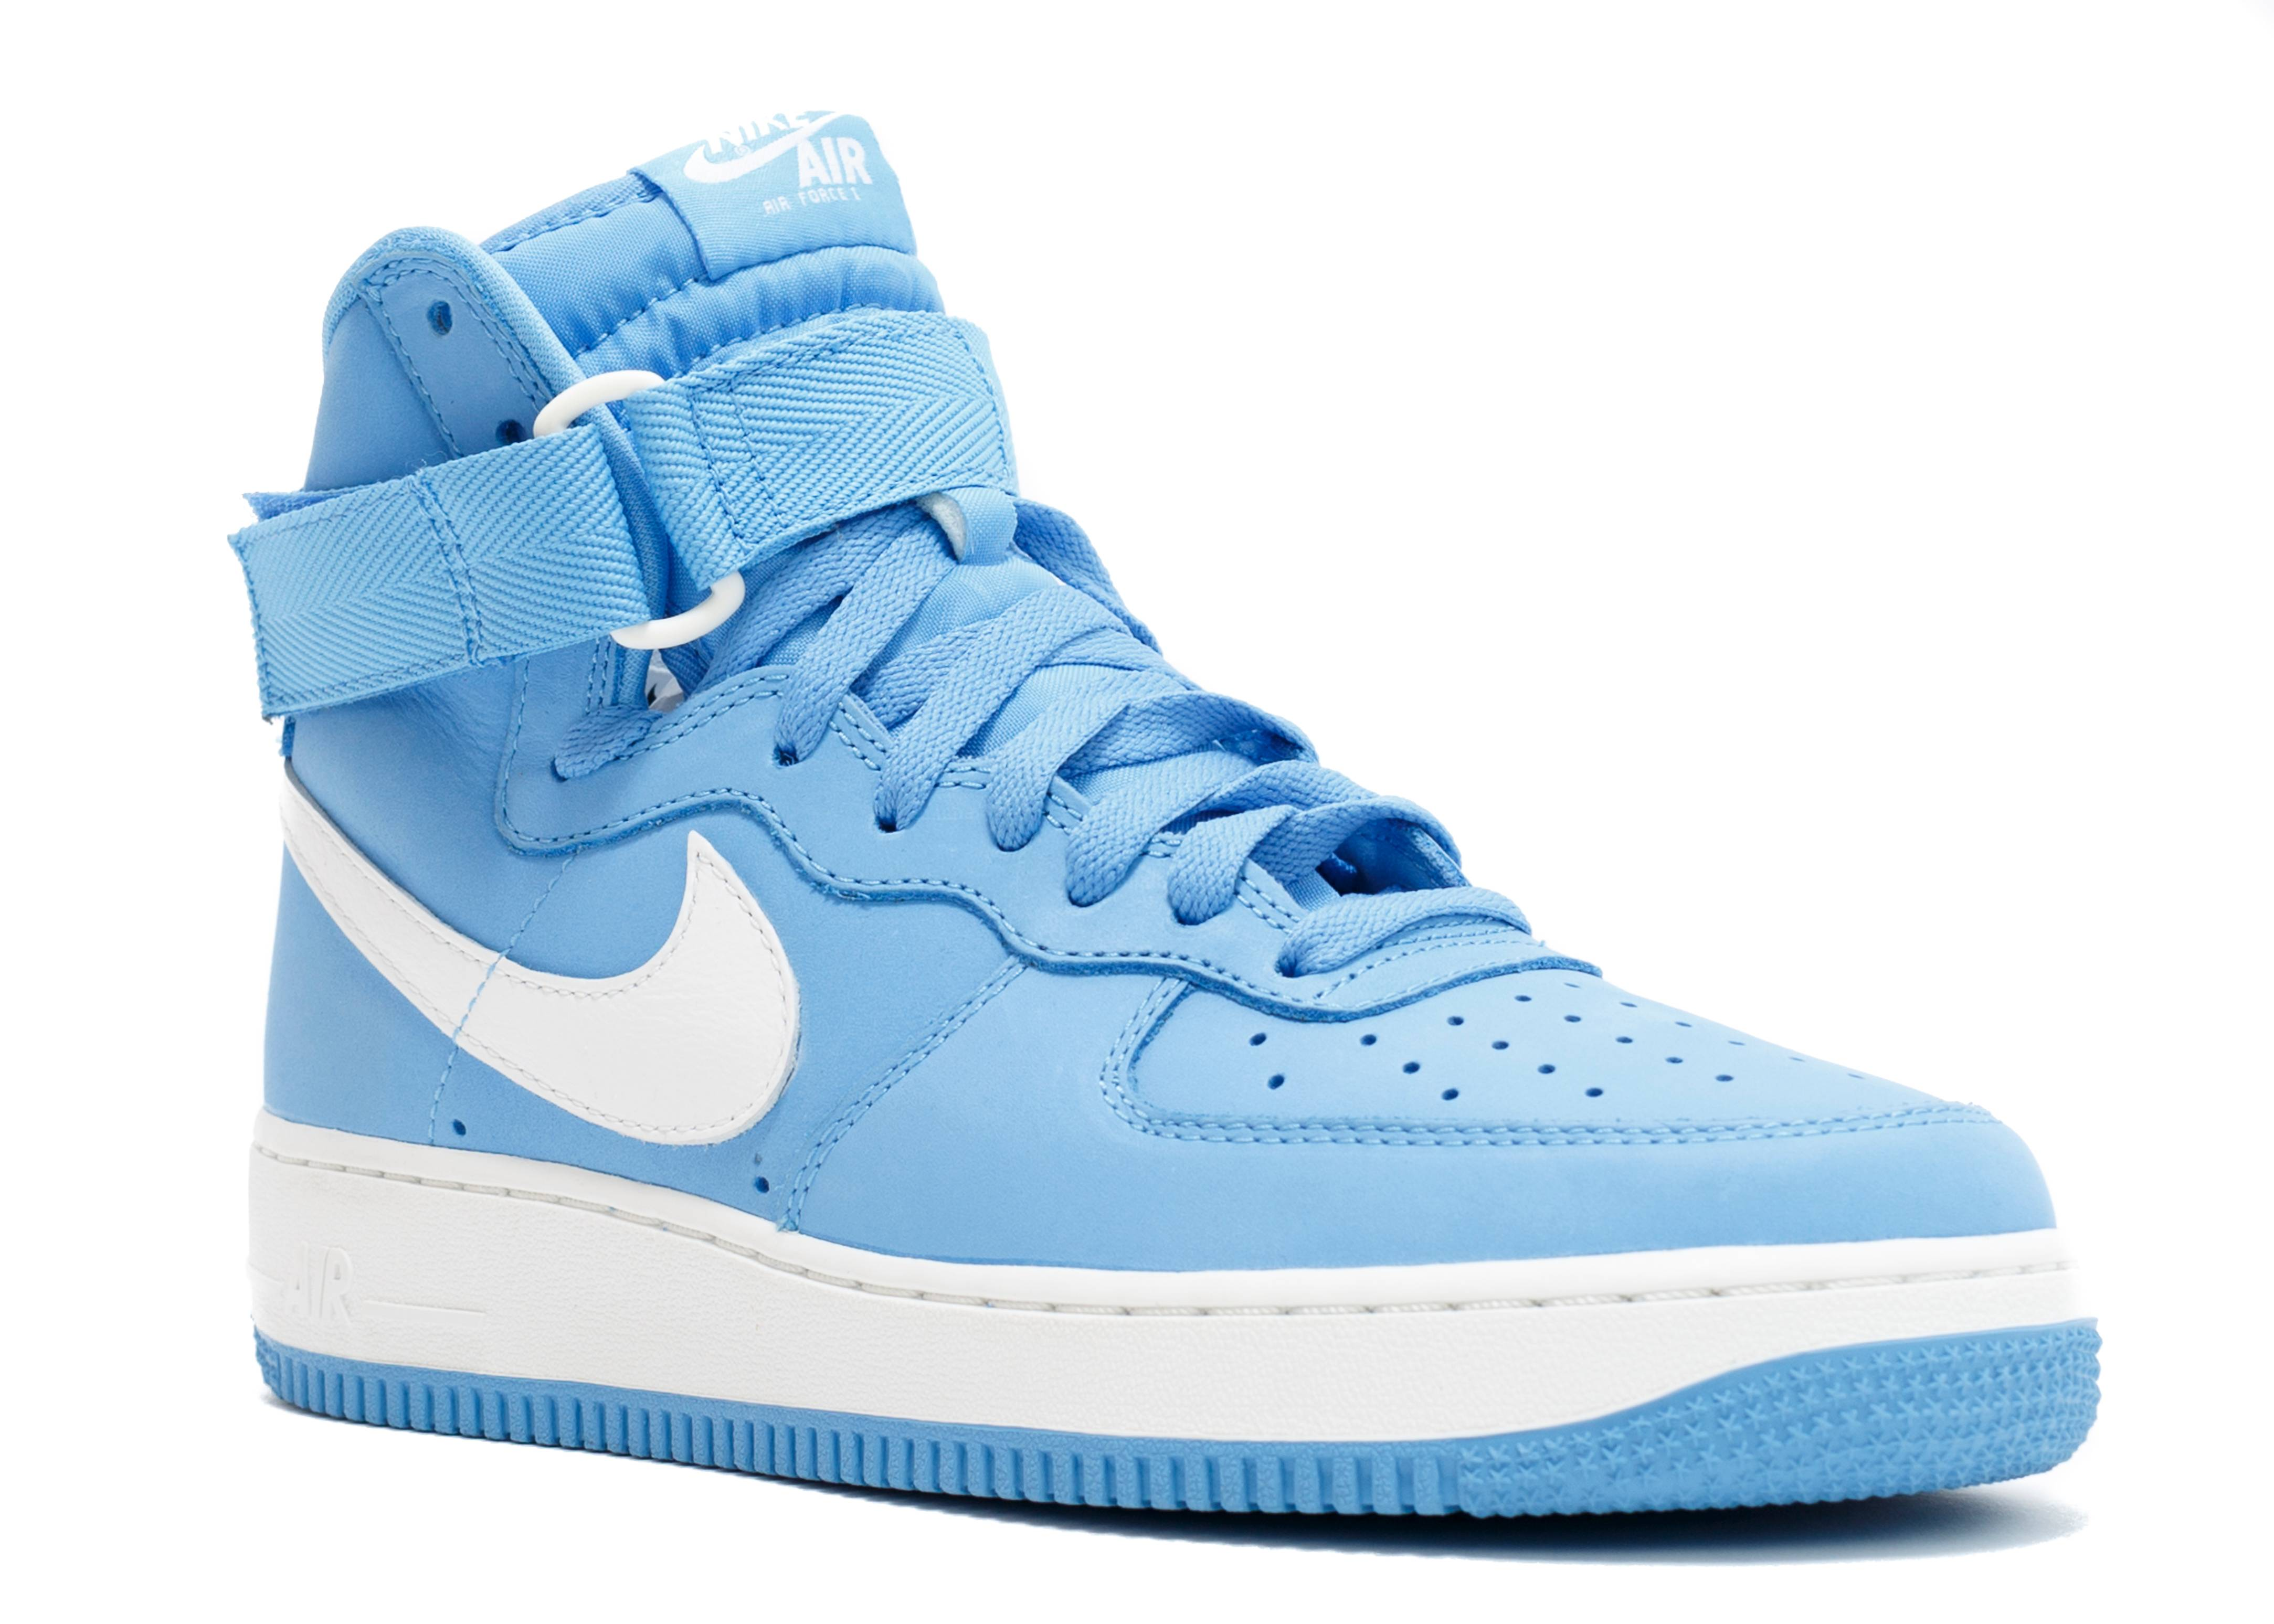 air force 1 hi retro qs nike 743546 400 university blue flight club. Black Bedroom Furniture Sets. Home Design Ideas